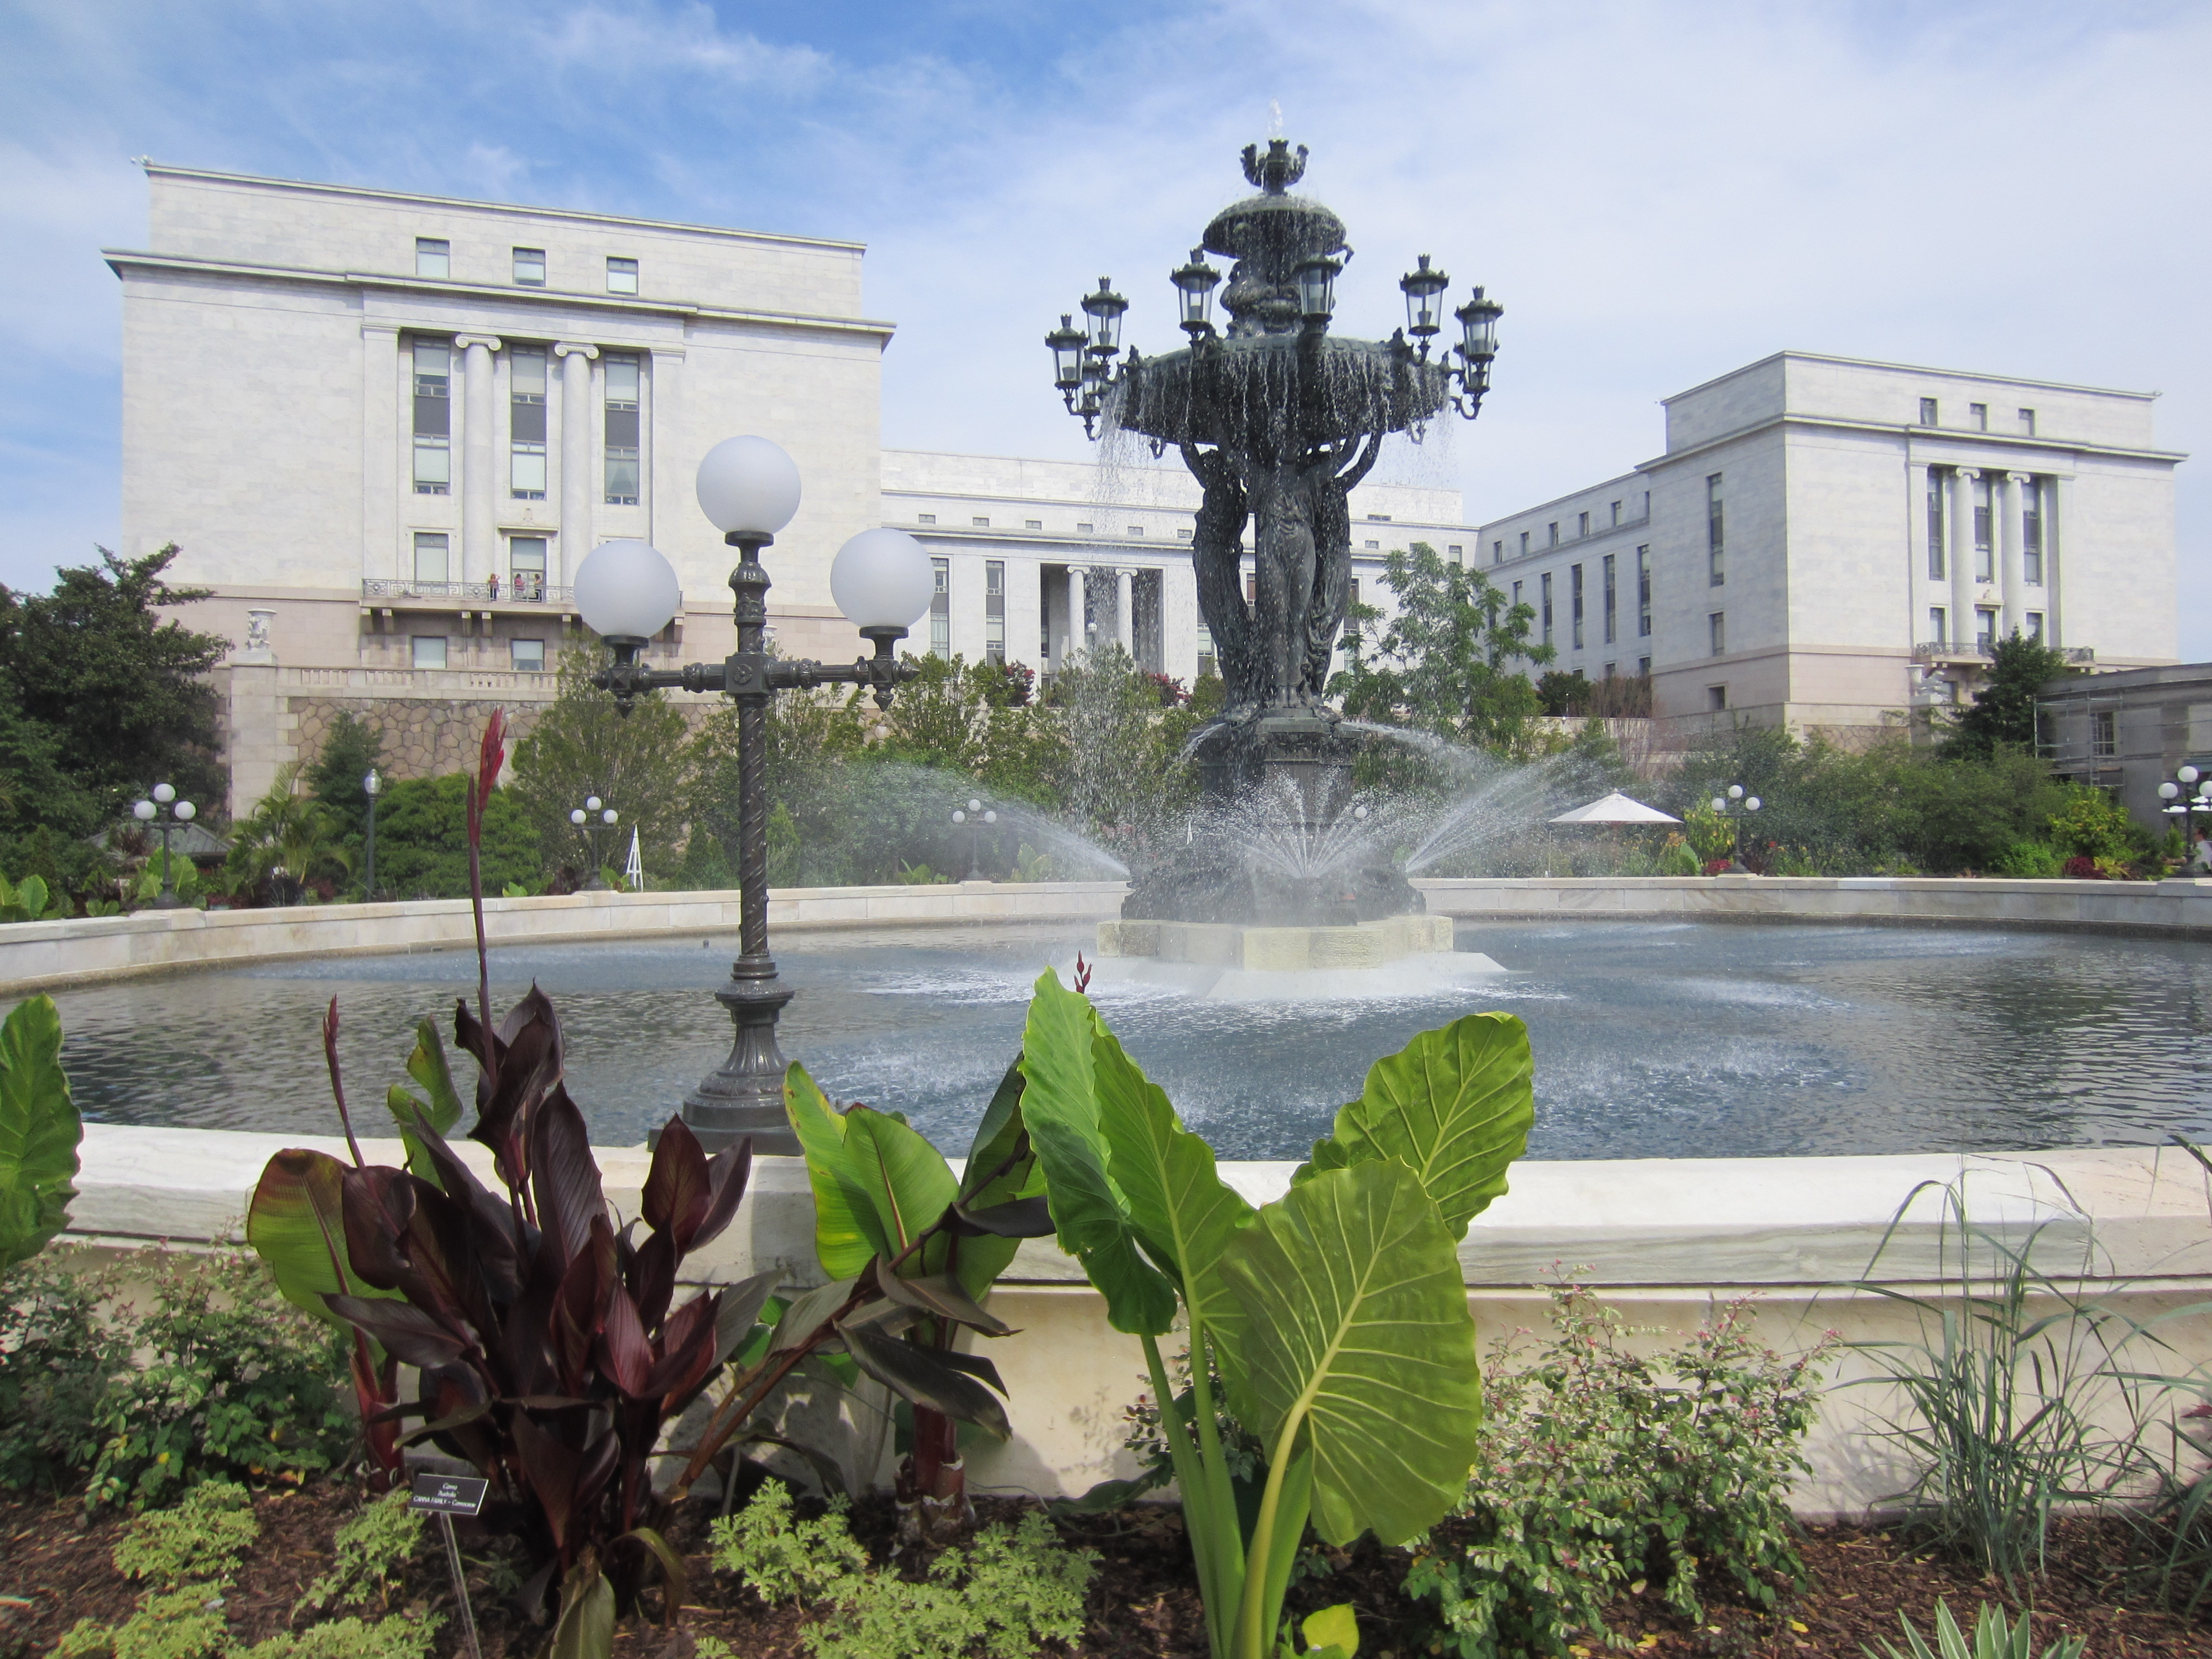 File:Bartholdi Fountain   United States Botanic Garden, Washington, D.C.  2012.JPG